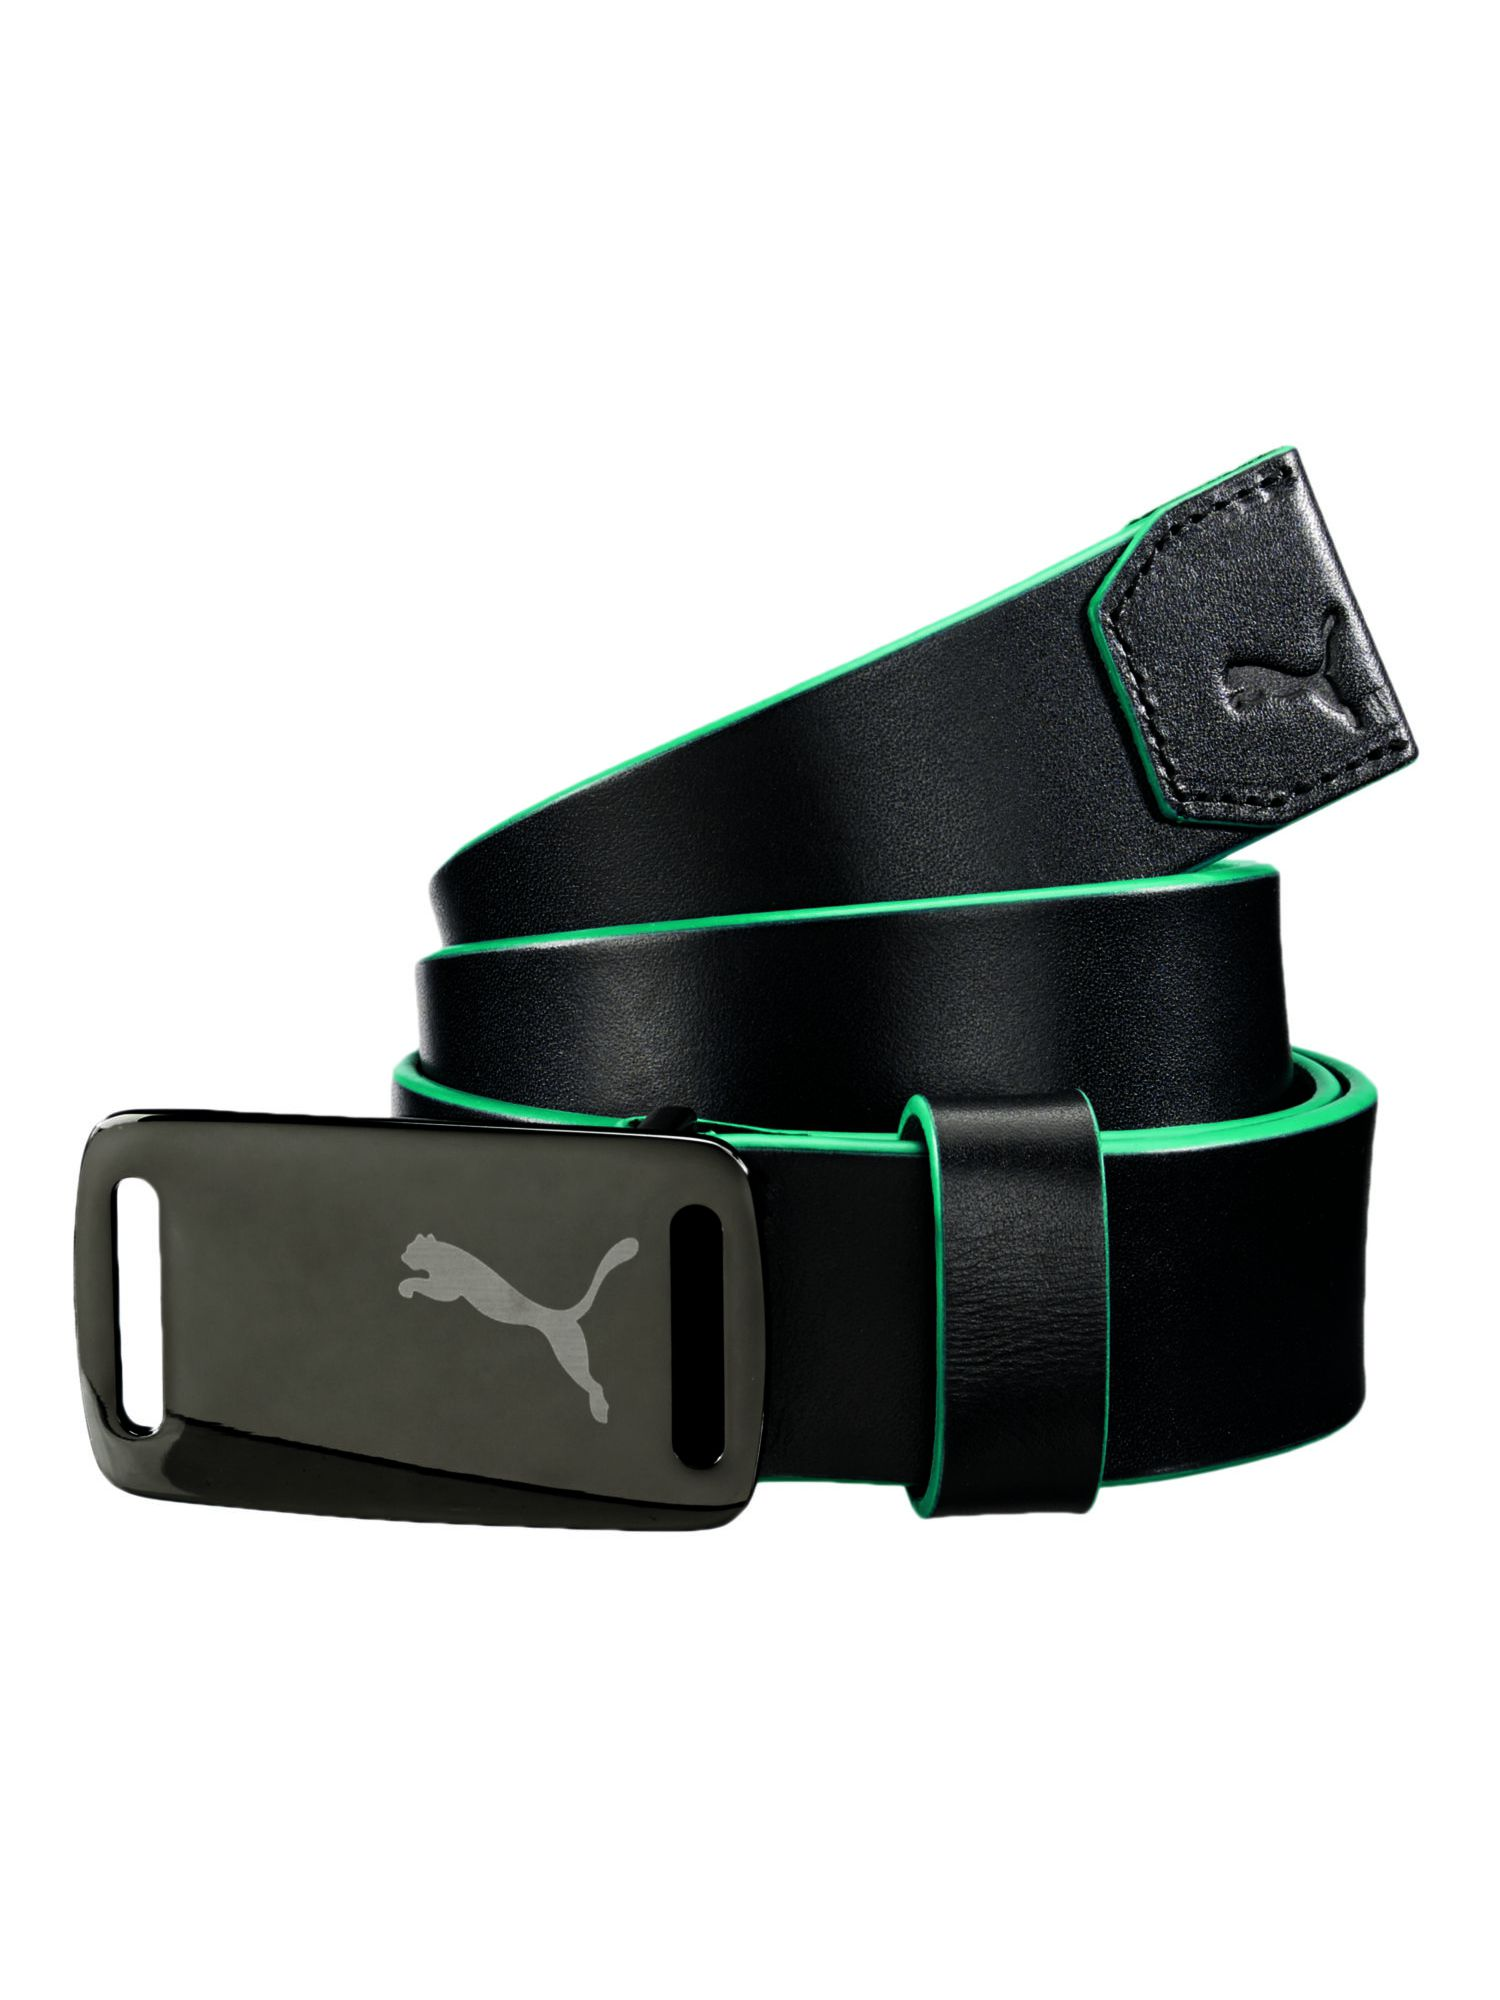 Lux fitted golf belt